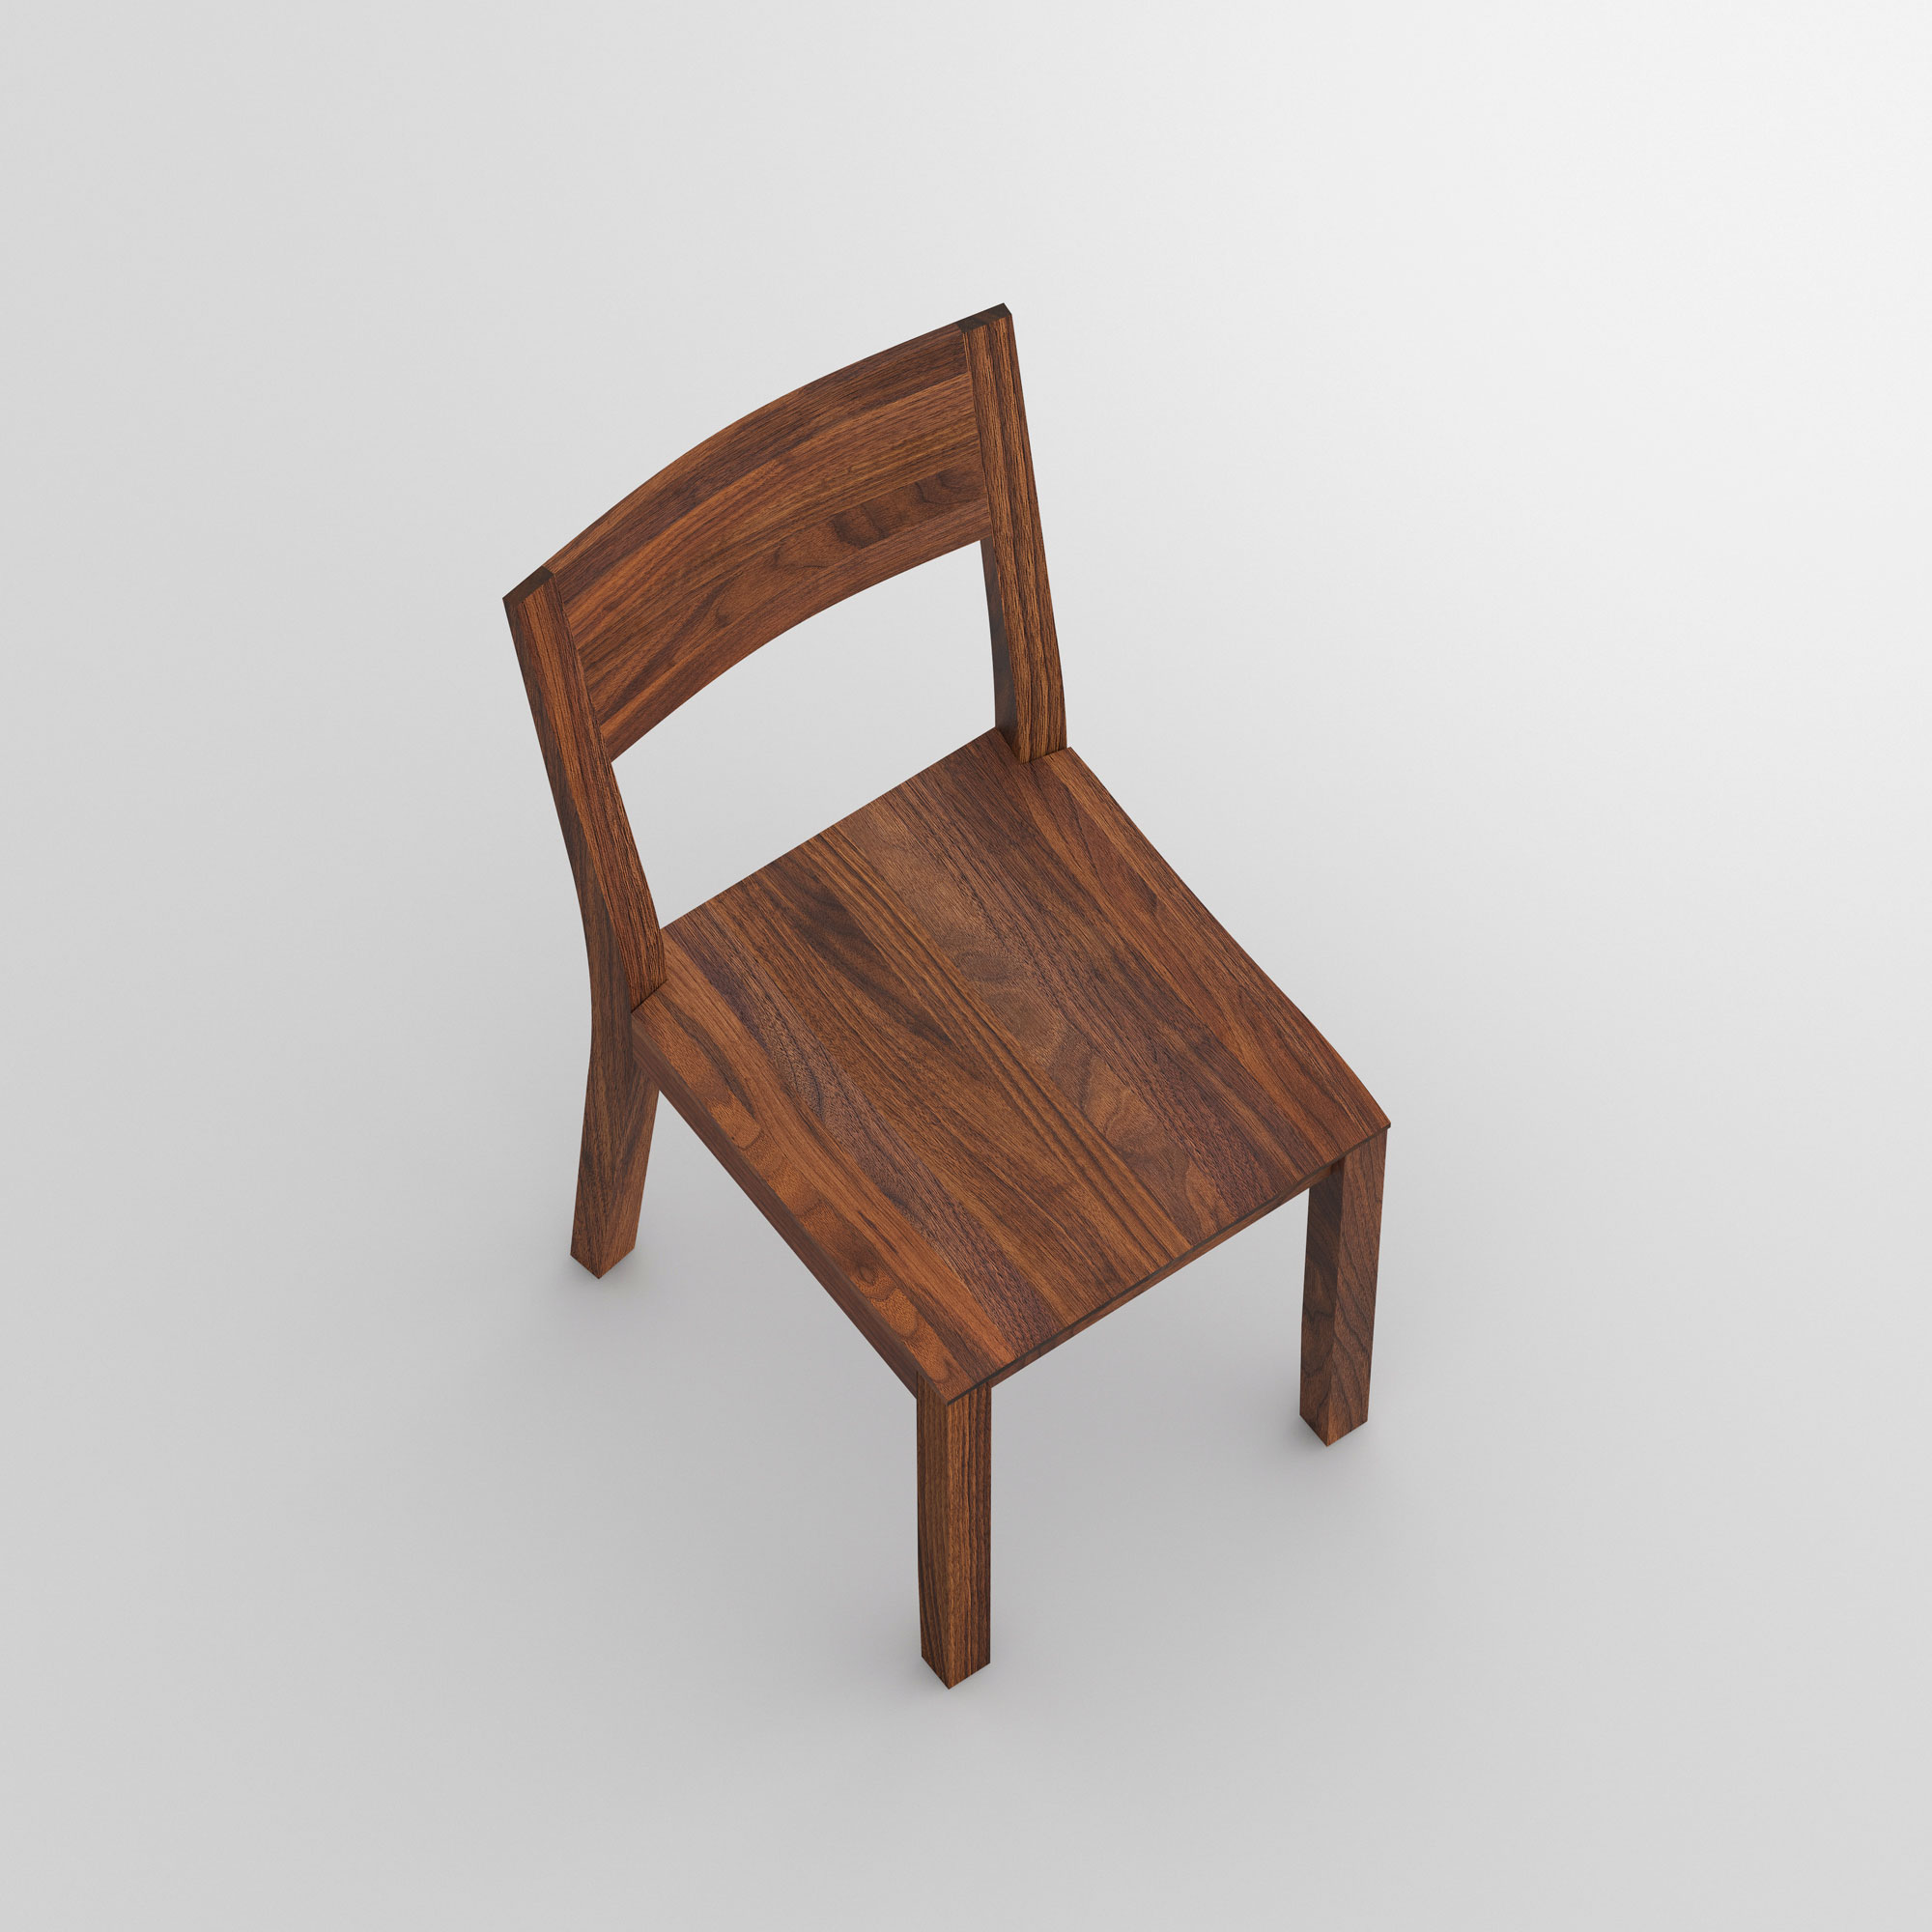 Dining Room Wooden Chair NOMI cam2 custom made in solid wood by vitamin design